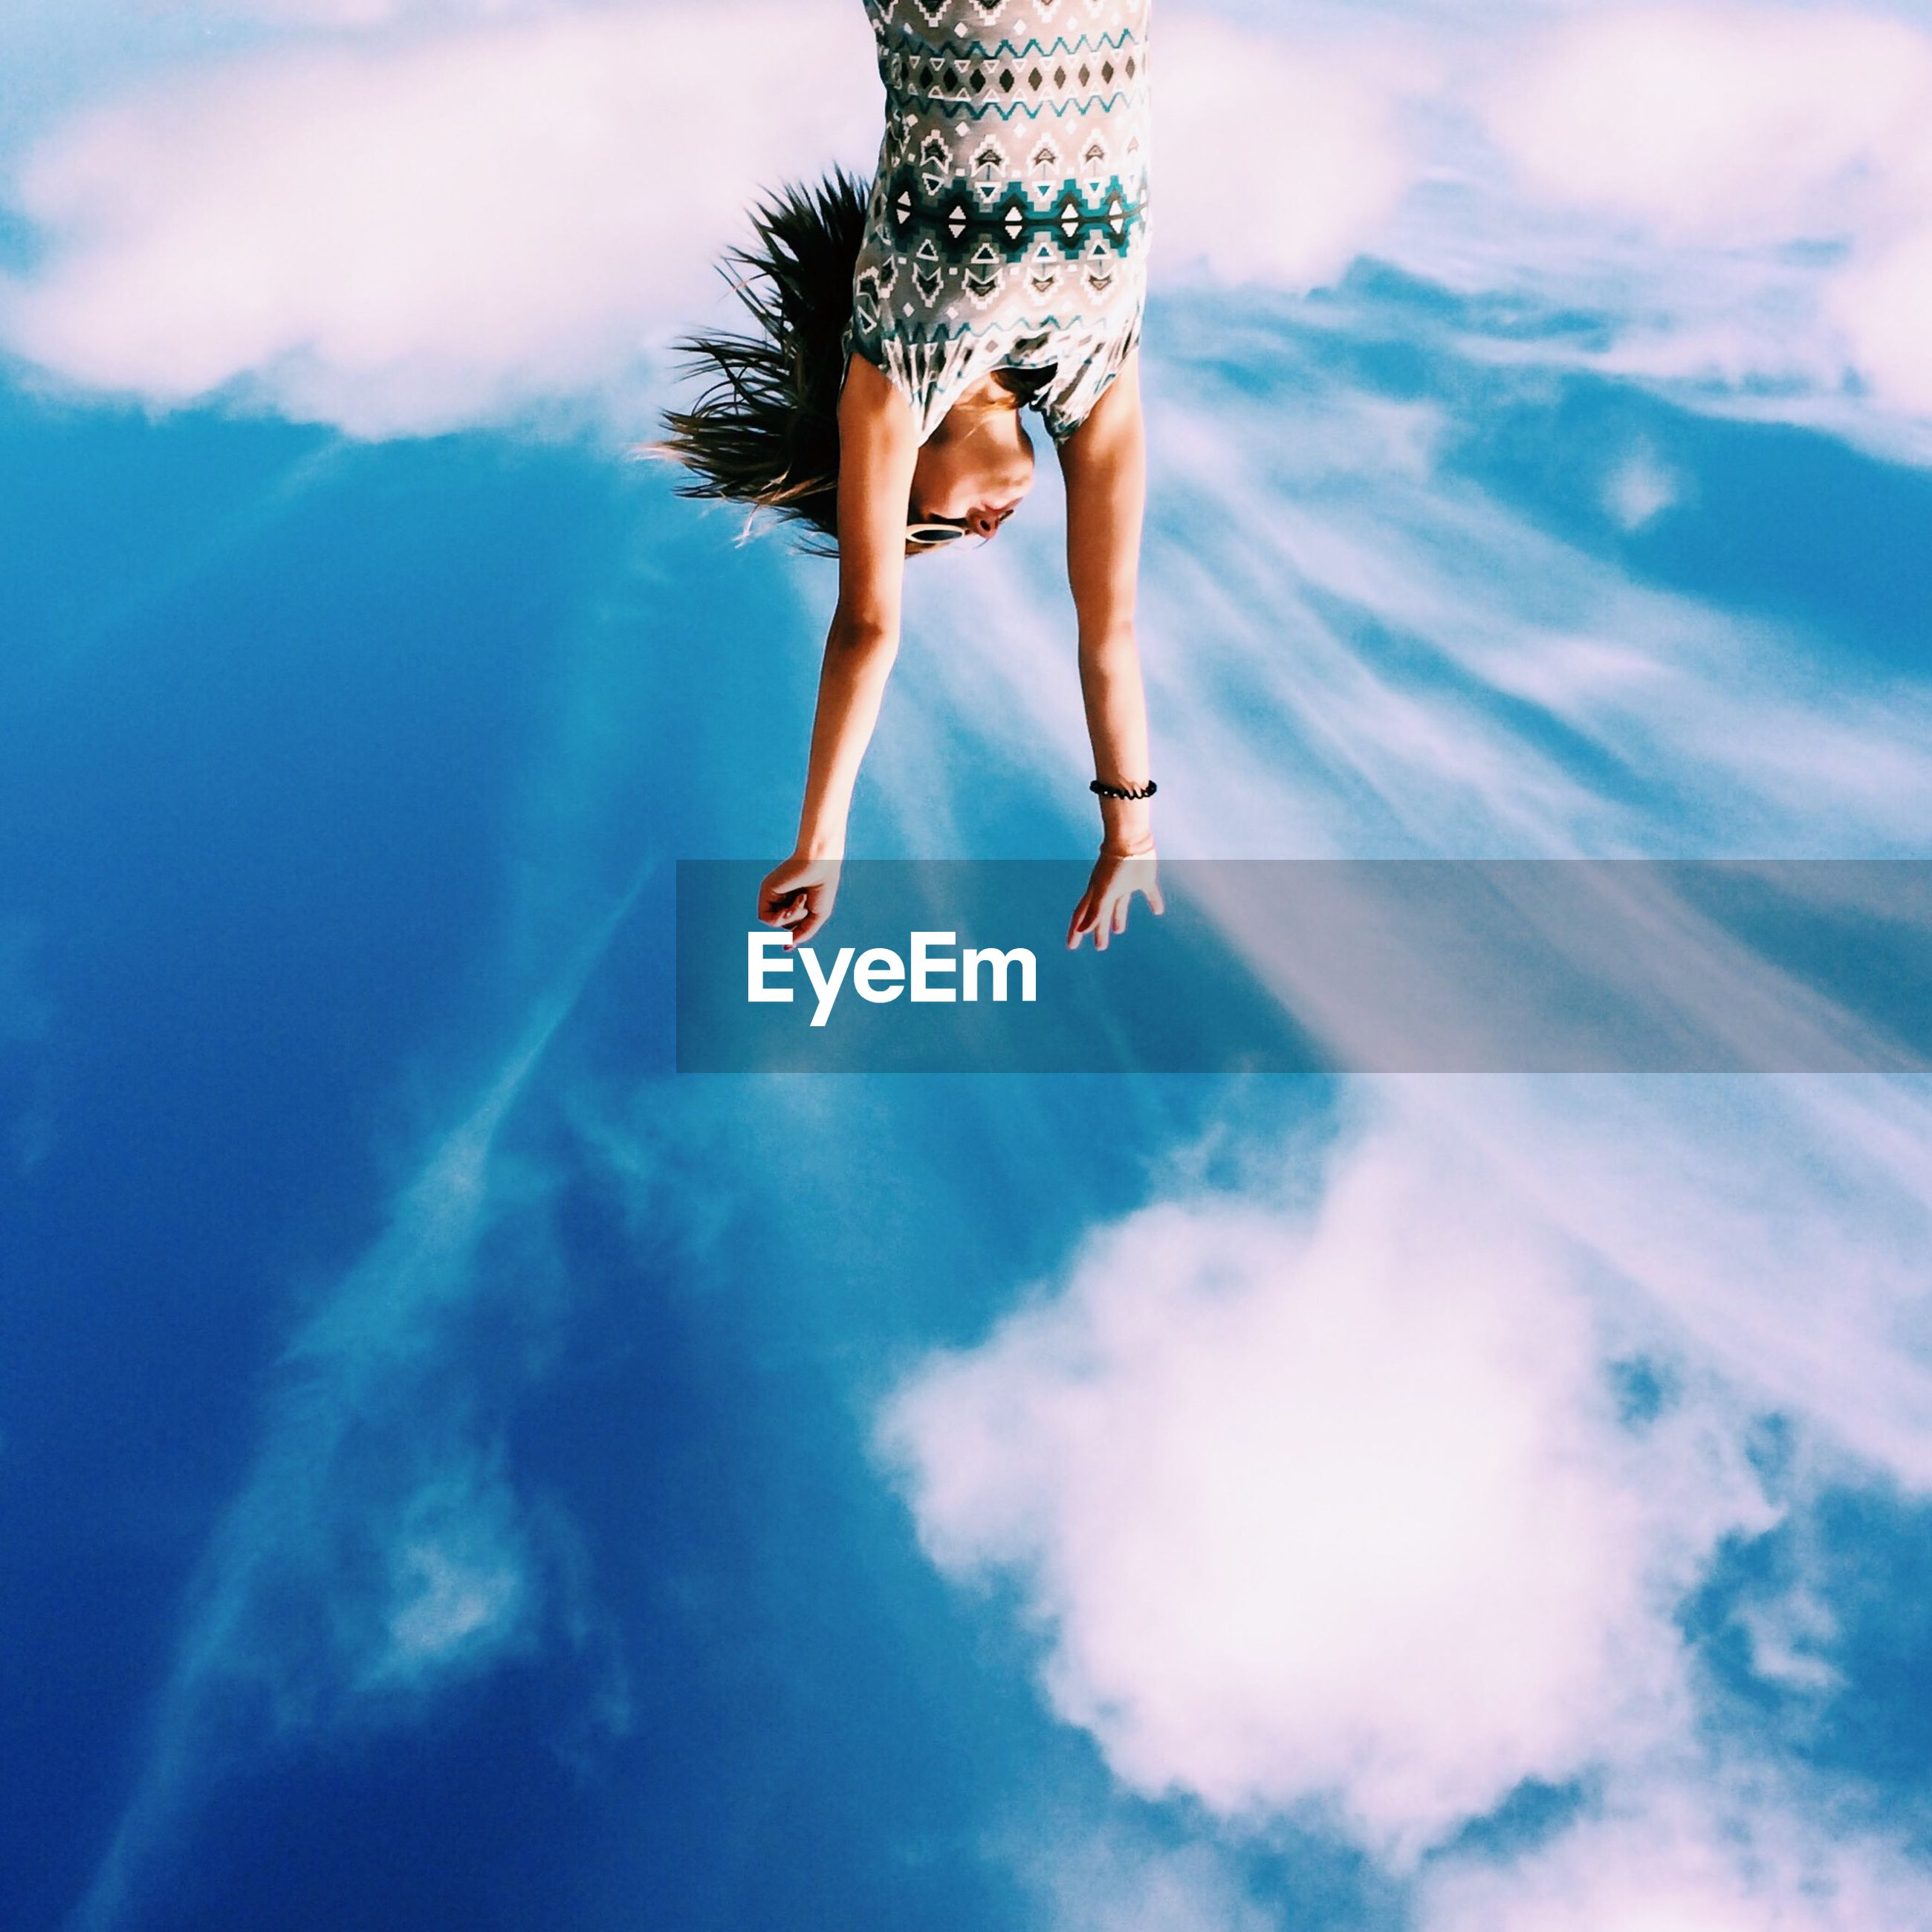 Upside down image of young woman with arms raised against sky